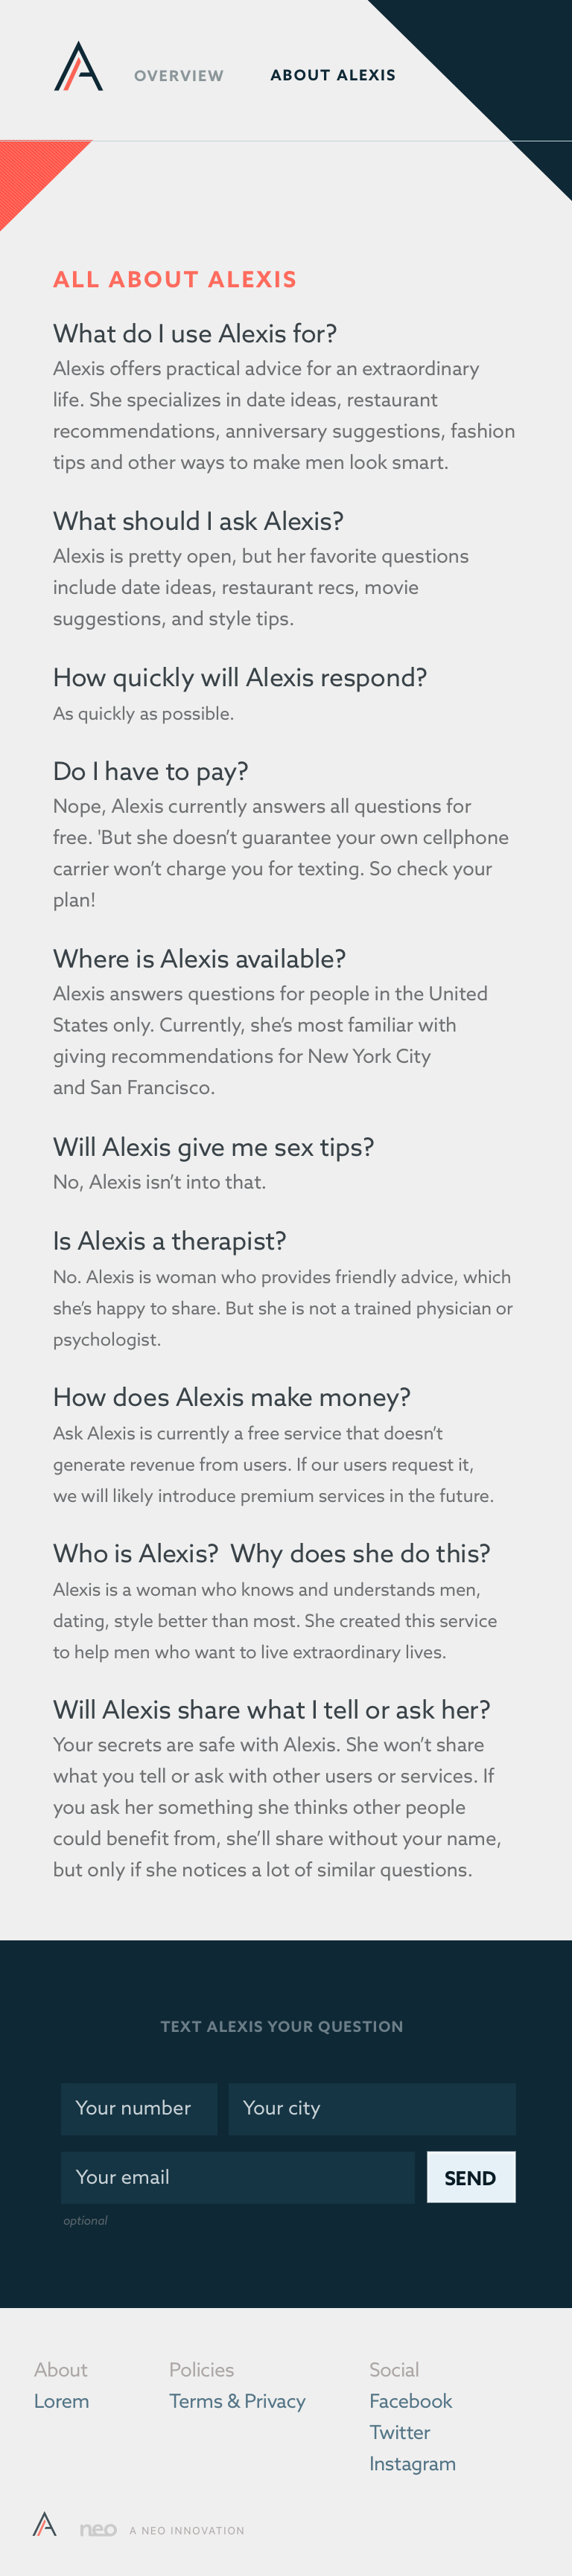 An FAQ to help users orient themselves to what to expect when texting Alexis.